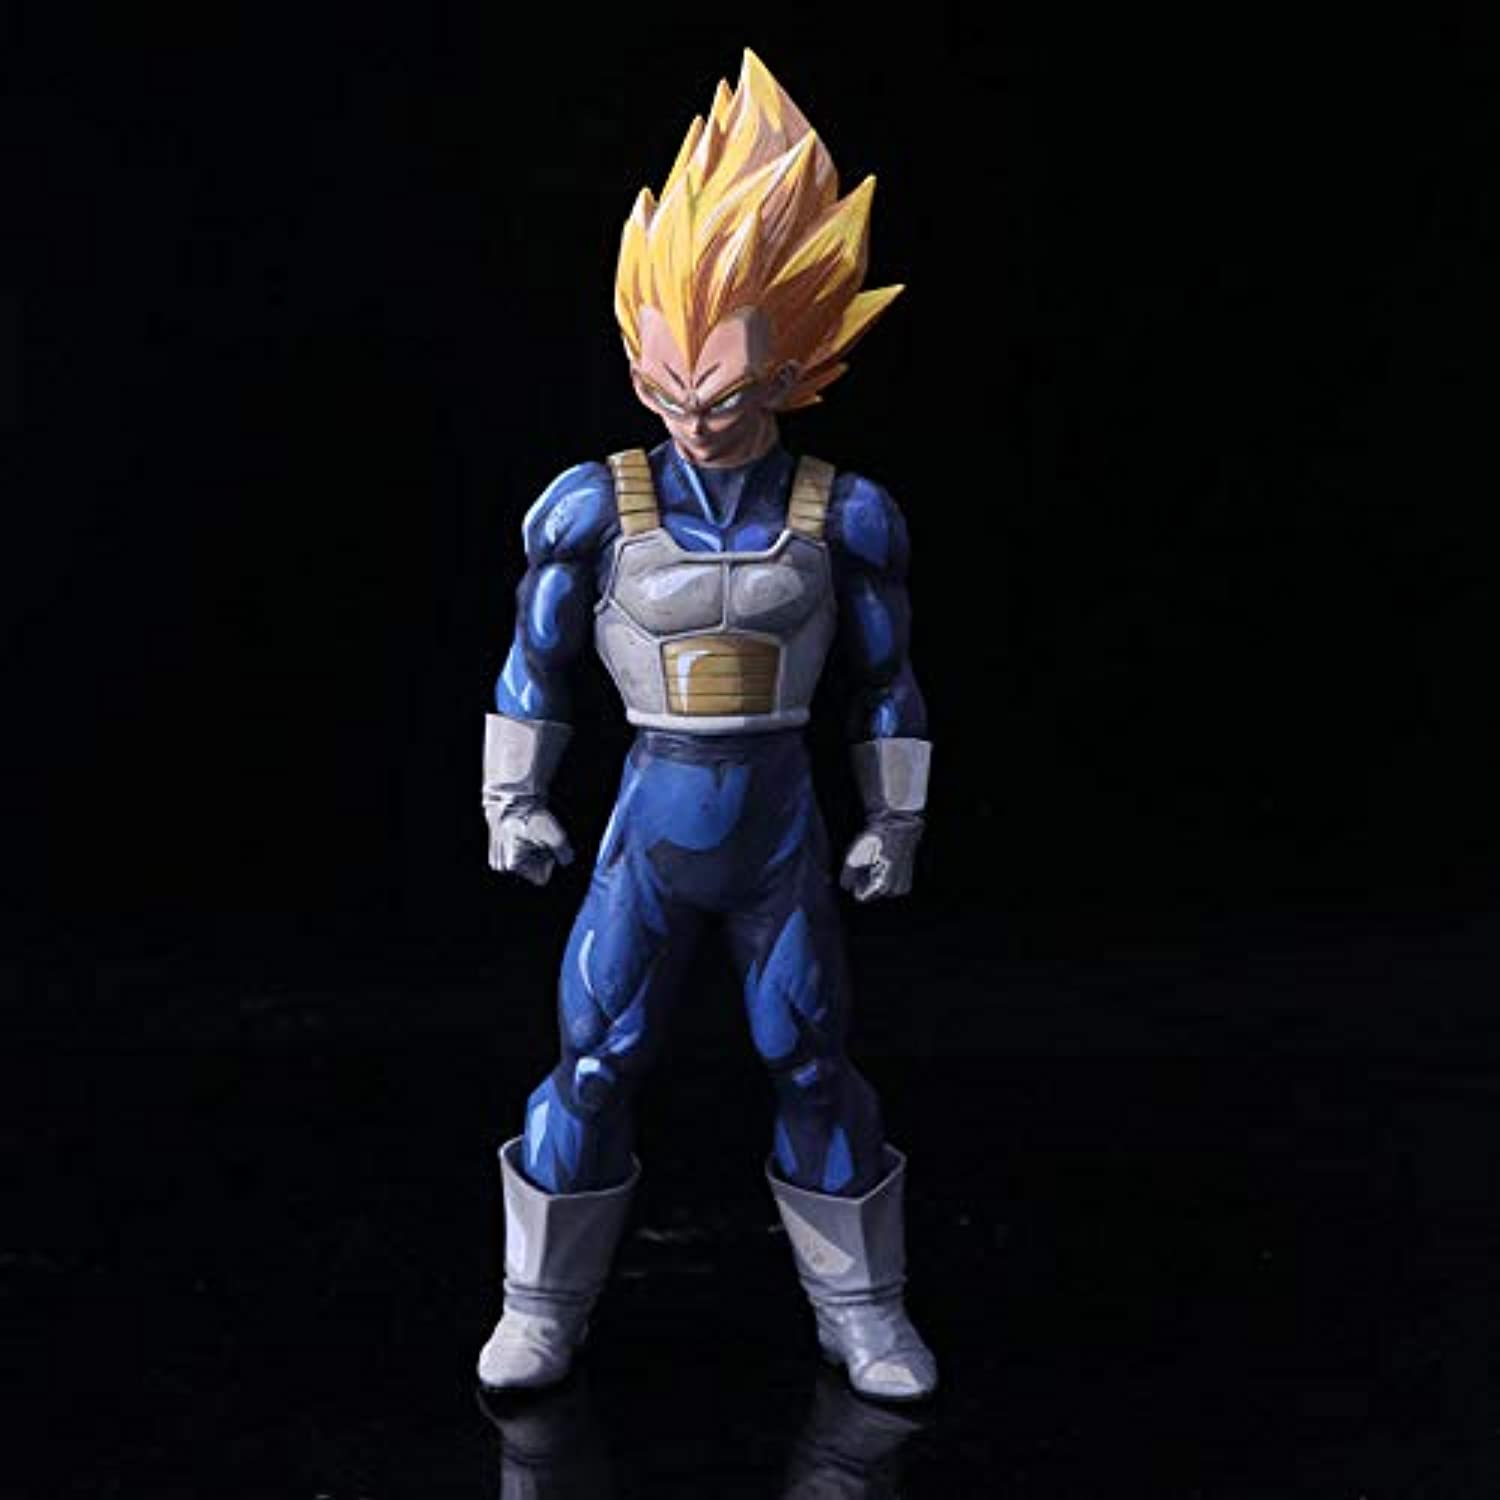 Anime character model toy Dragon Ball ornaments PVC statue souvenir collection crafts gifts, 2_ height about 33cm